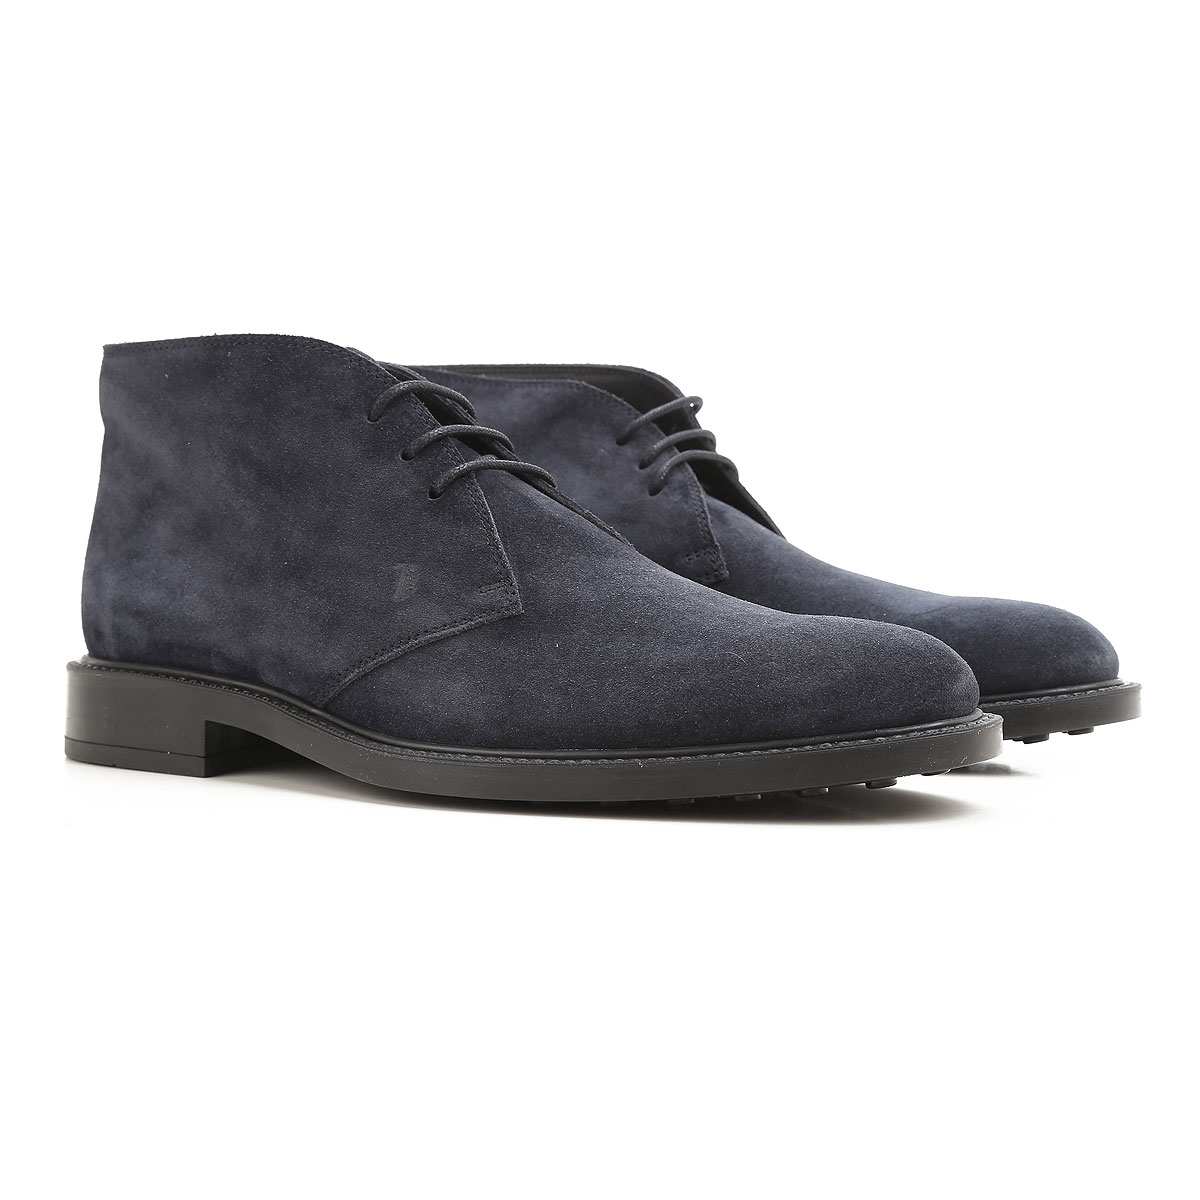 Tods Boots for Men, Booties On Sale, Midnight Blue, Suede leather, 2019, 10 10.5 11 12 6 6 6 6.5 7 7.5 8 8.5 9 9.5